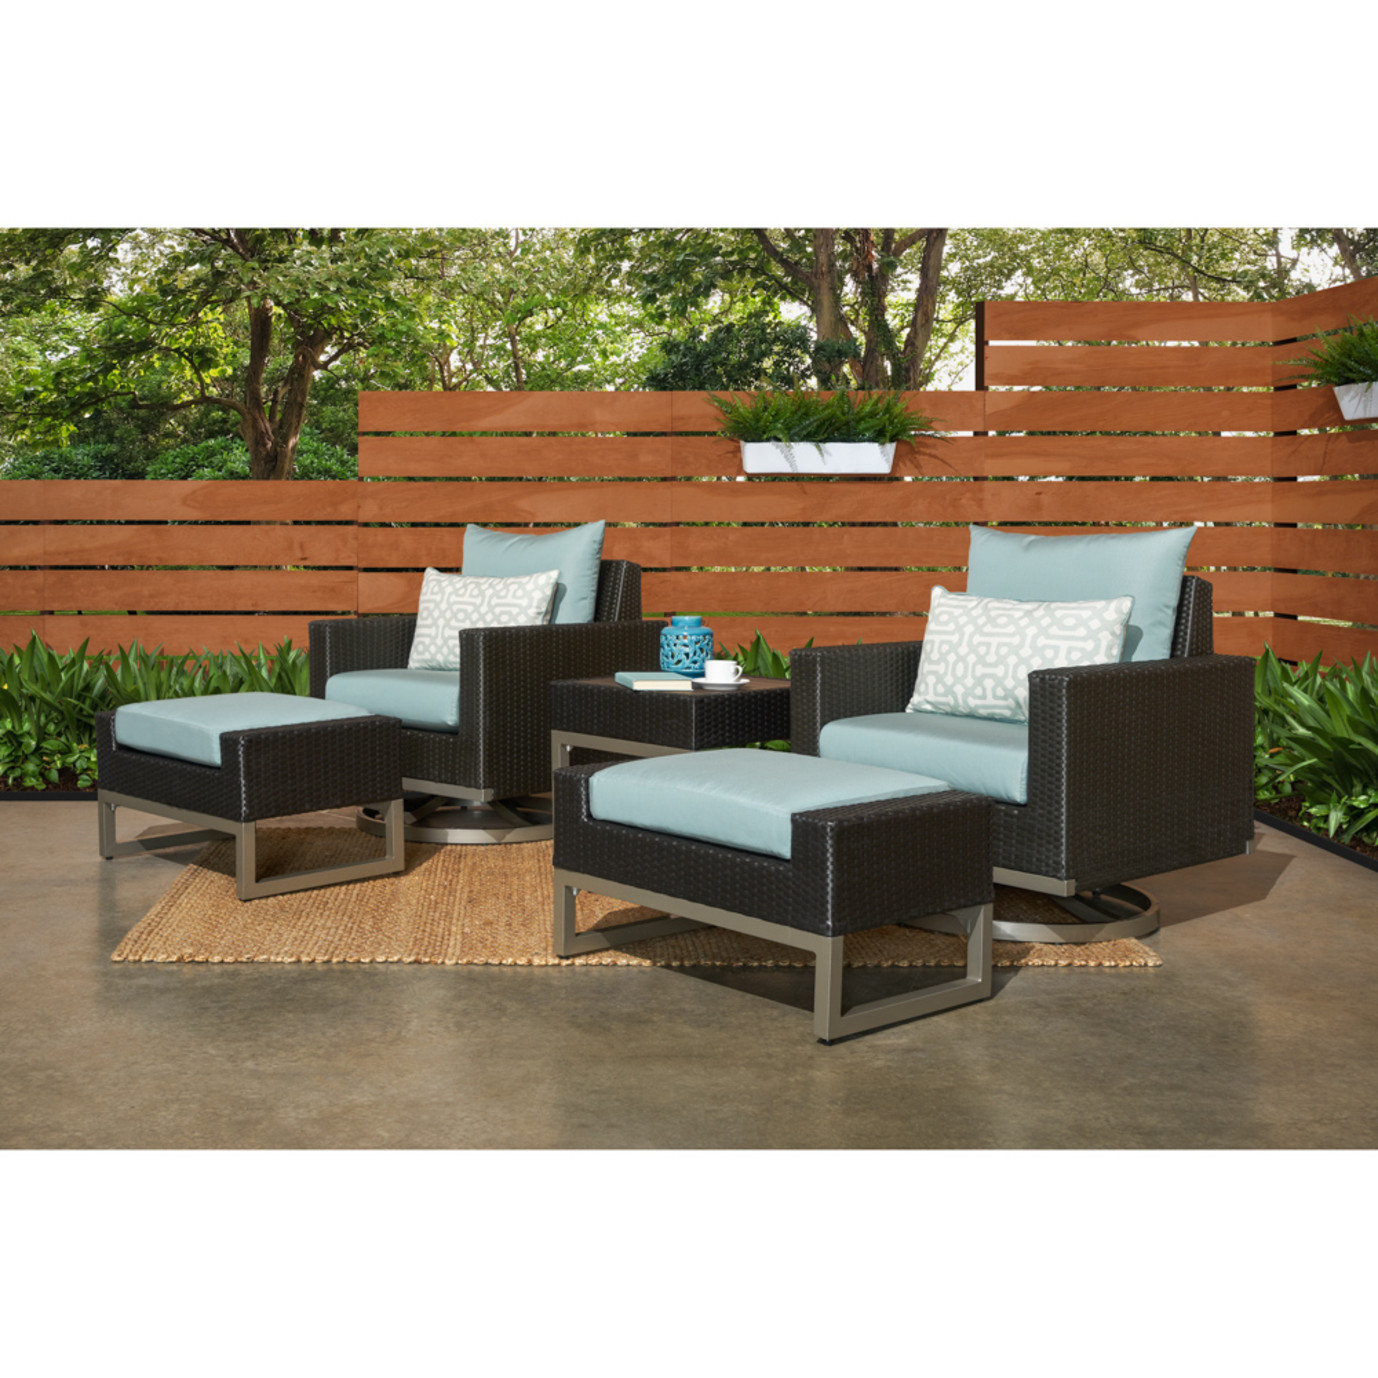 Milo™ Espresso 5 Piece Motion Club Set - Spa Blue